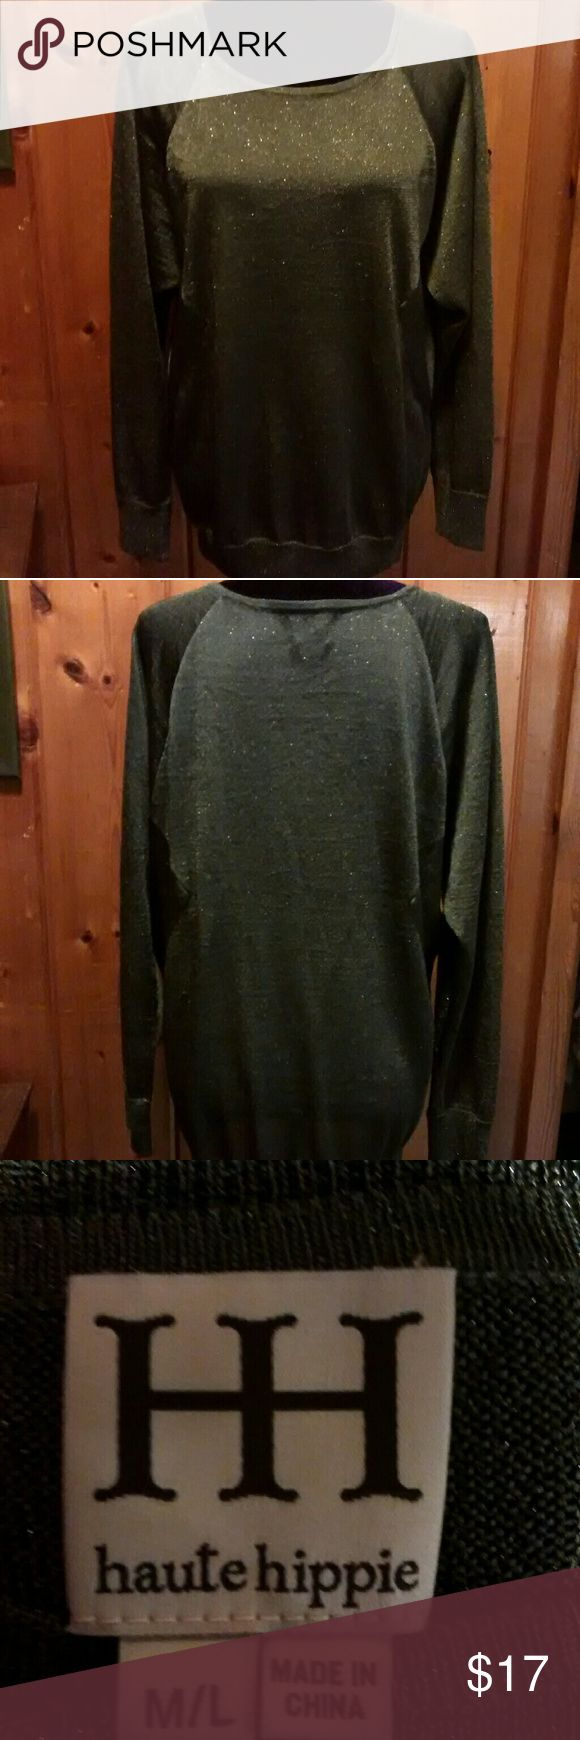 Haute Hippie hunter green shimmer blouse Haute Hippie green shimmer blouse. The picture looks like it has fuzzys but it is actually the shimmery spots. Camera doesn't do it justice. Listing as size large because tag has m/L and it's pretty roomy Haute Hippie Tops Blouses